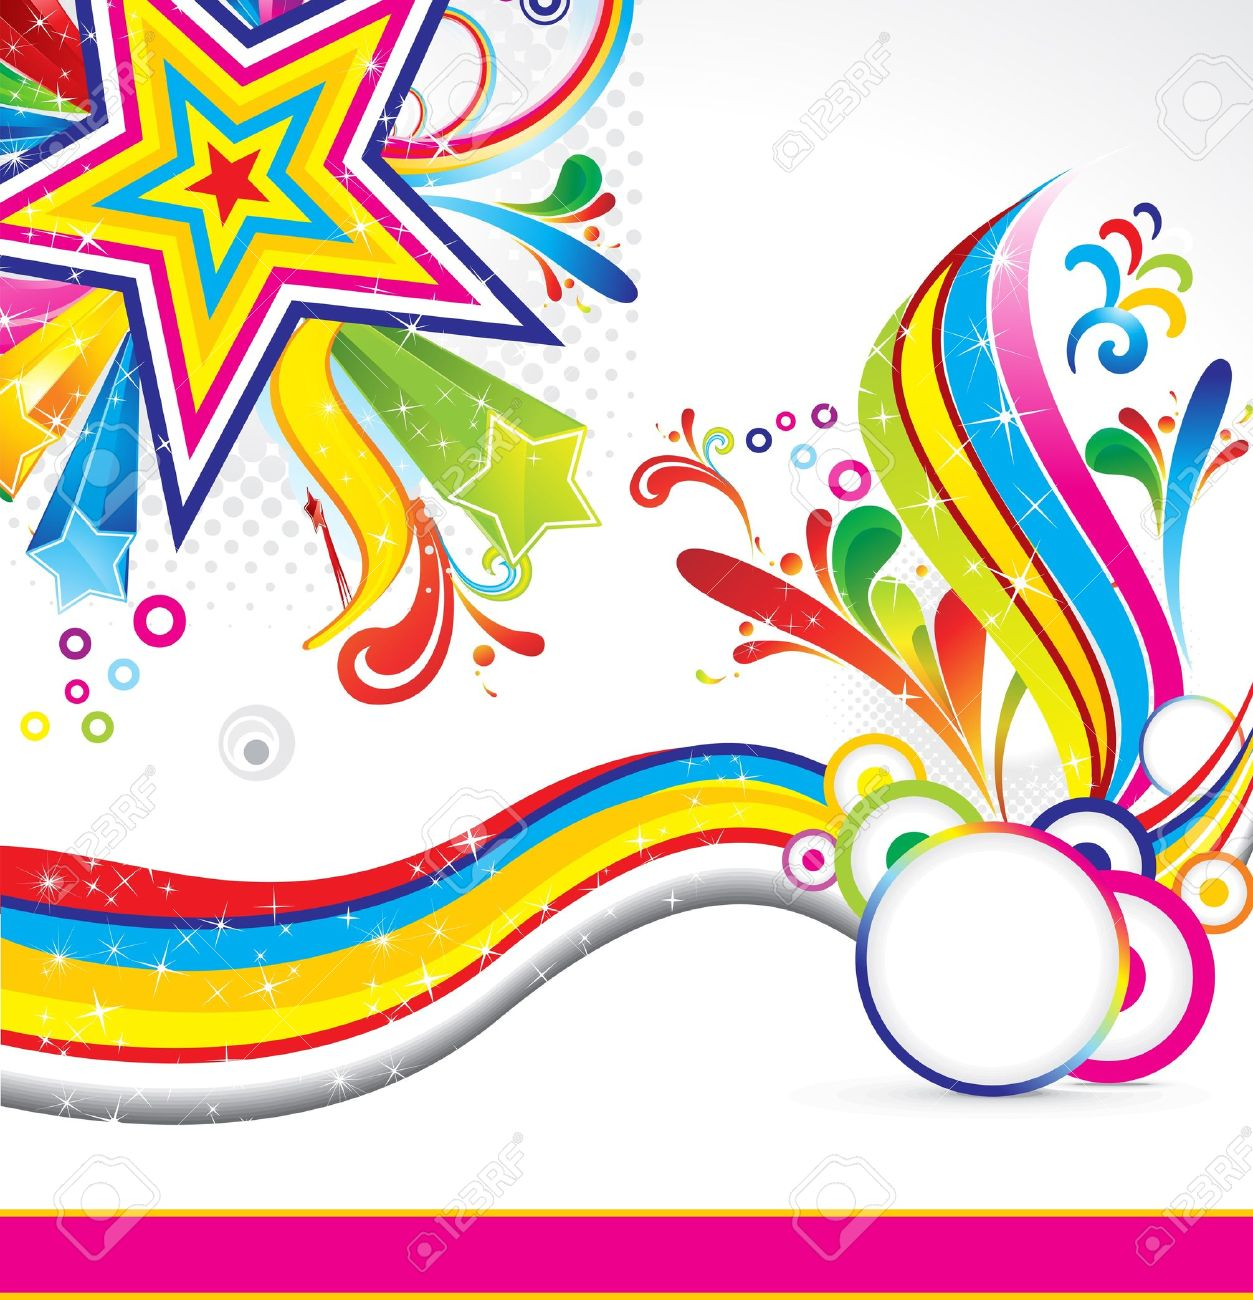 abstract colorful star backgorund with wave vector illustration Stock Vector - 10998660